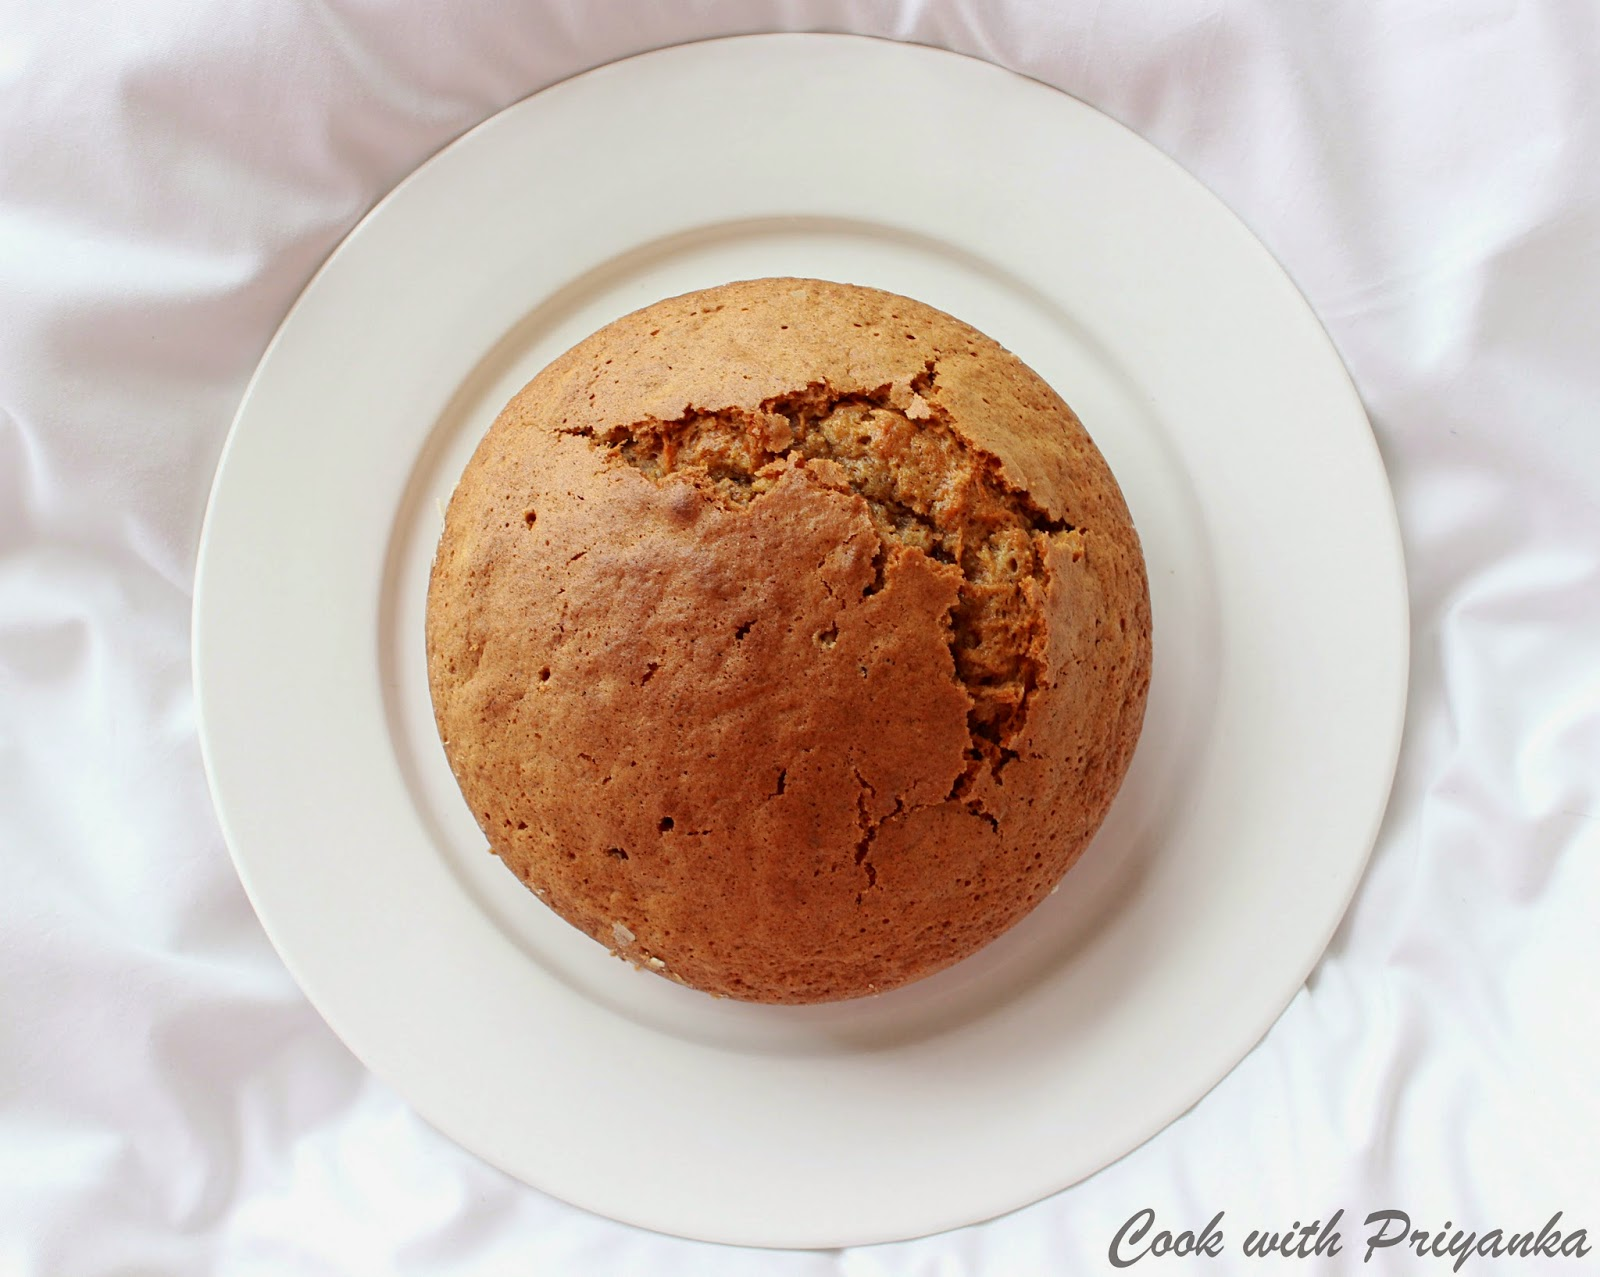 http://cookwithpriyankavarma.blogspot.co.uk/2014/06/spiced-carrot-cake-with-walnuts-with.html